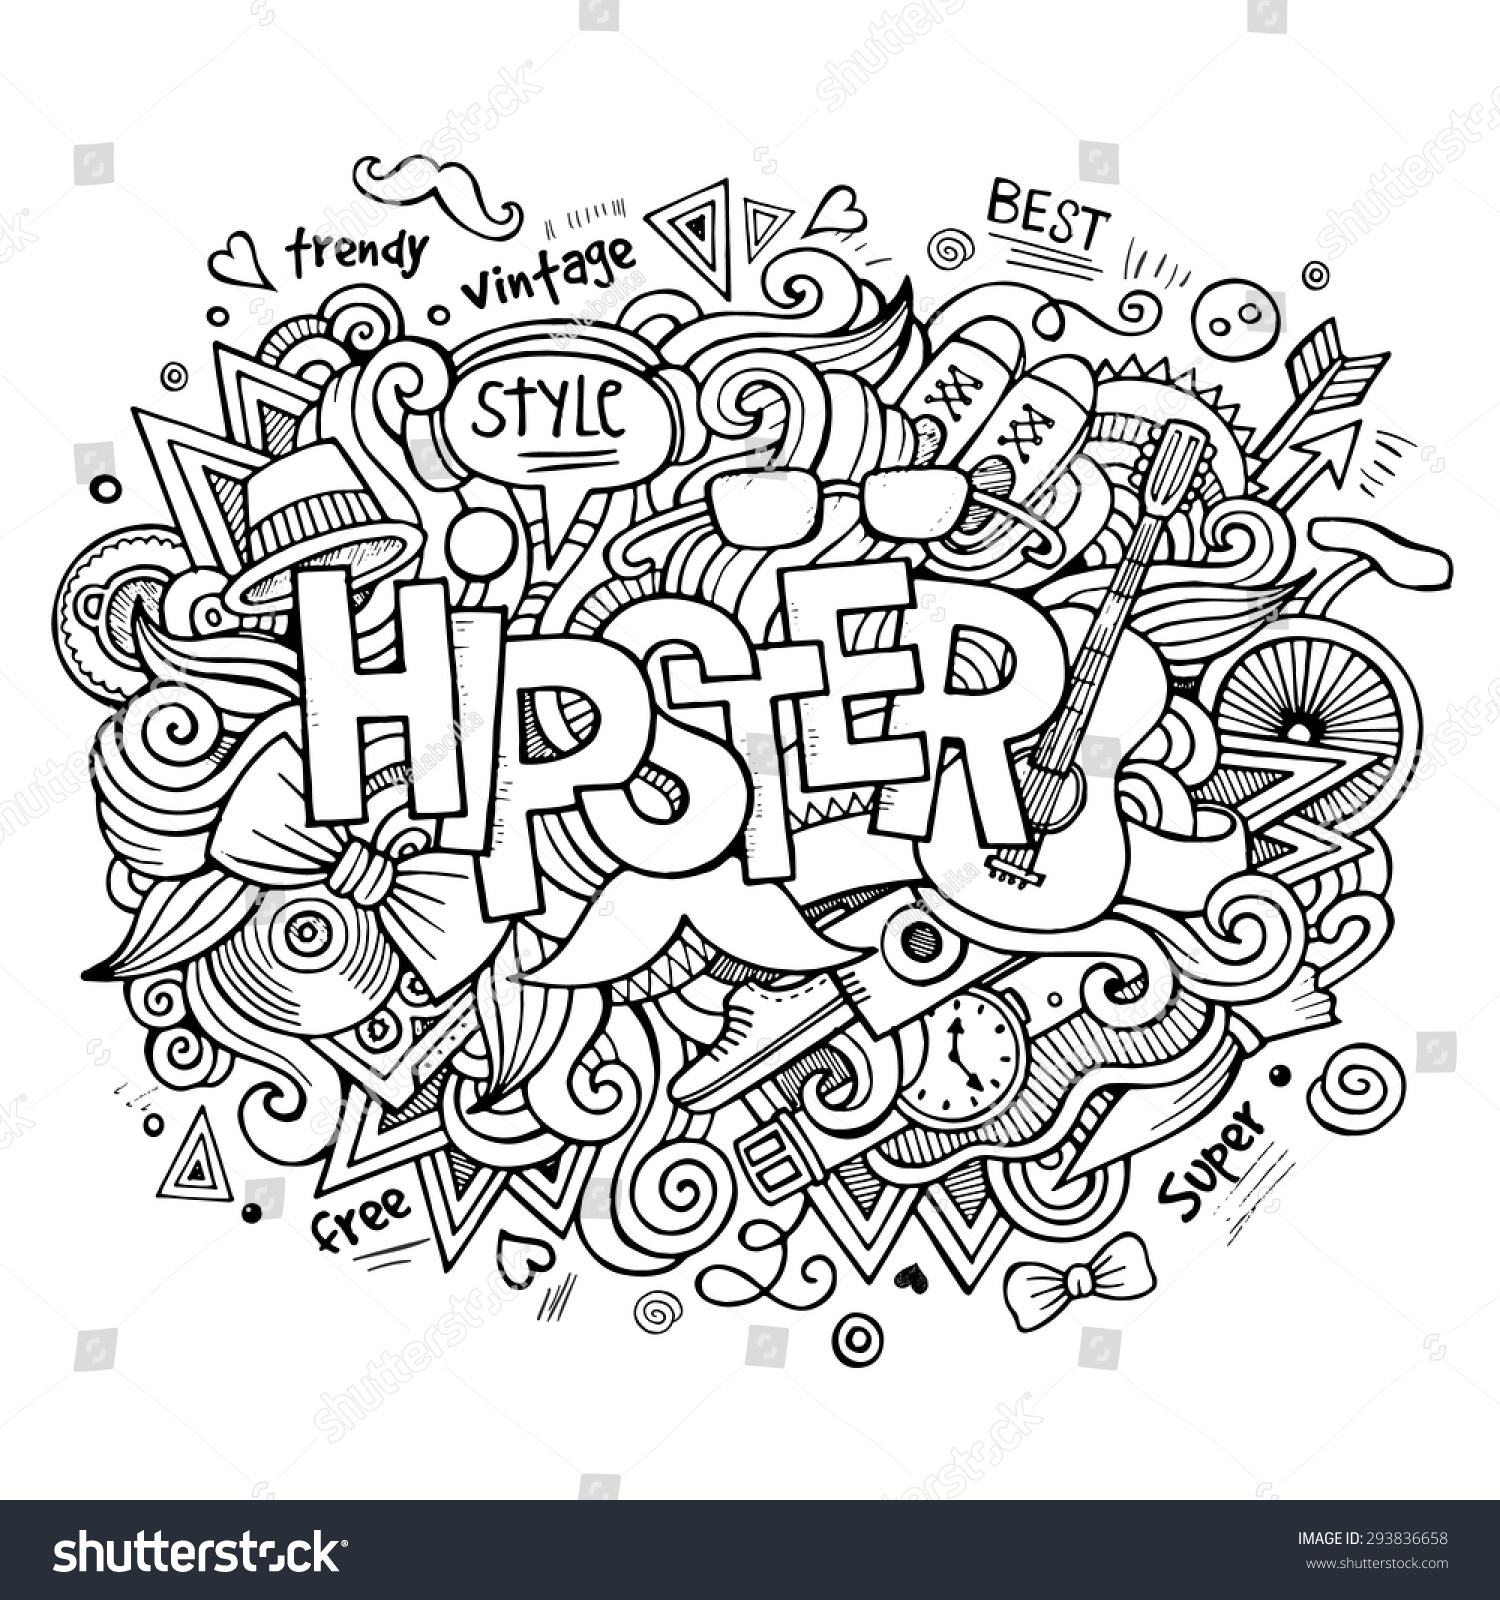 Hipster Hand Lettering Doodles Elements Symbols Stock Vector